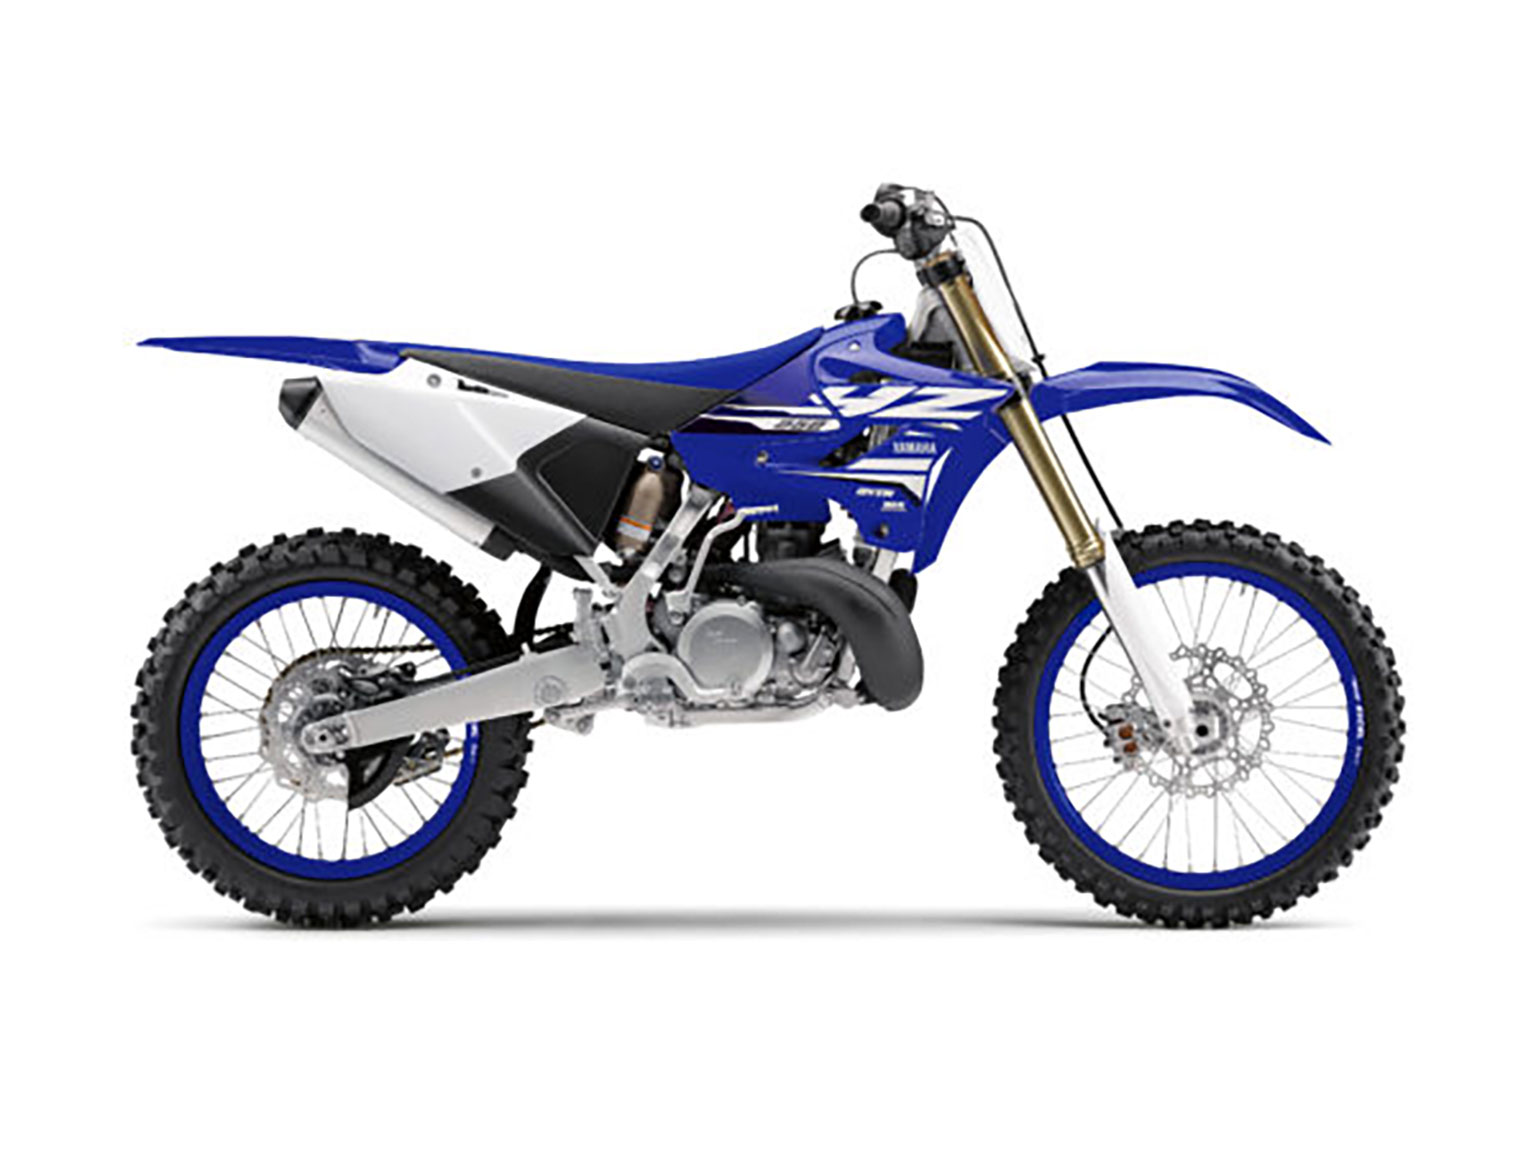 YZ250 gets no major changes